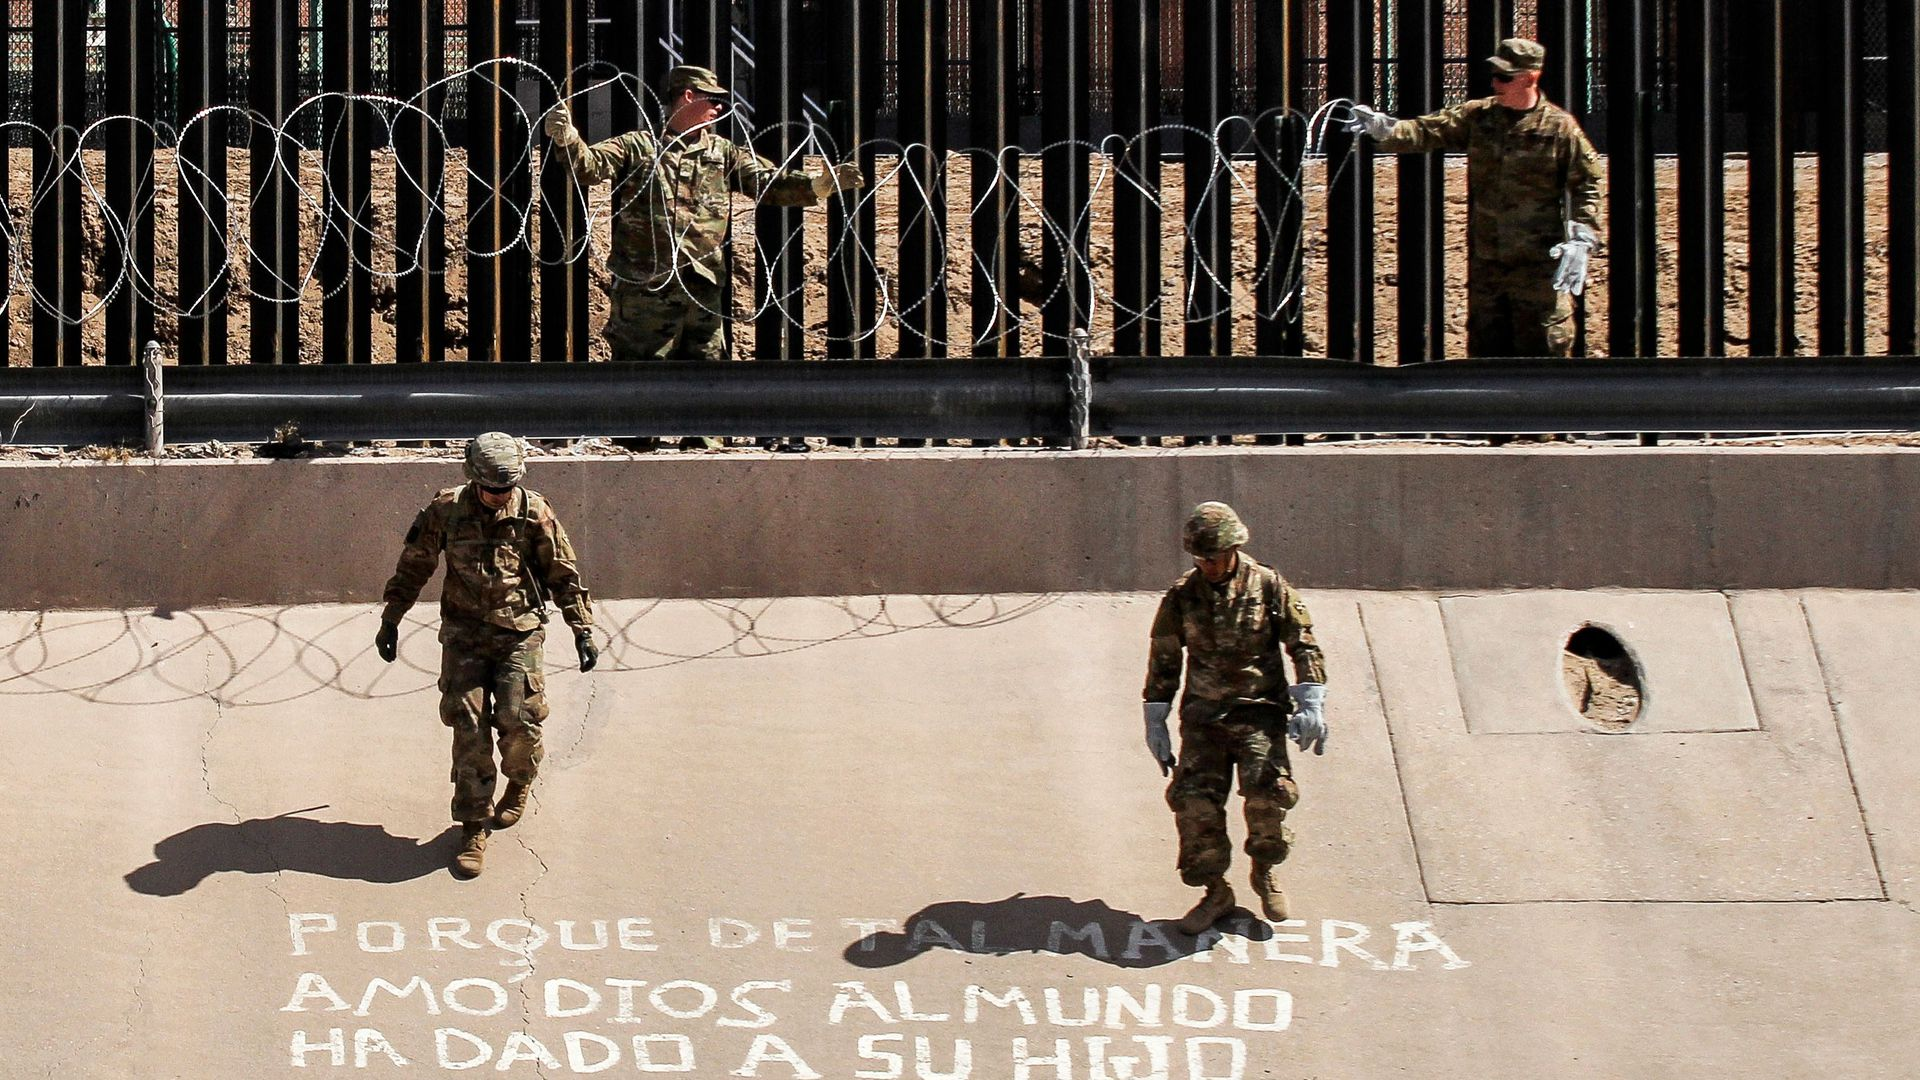 U.S. troops at the Southern border.